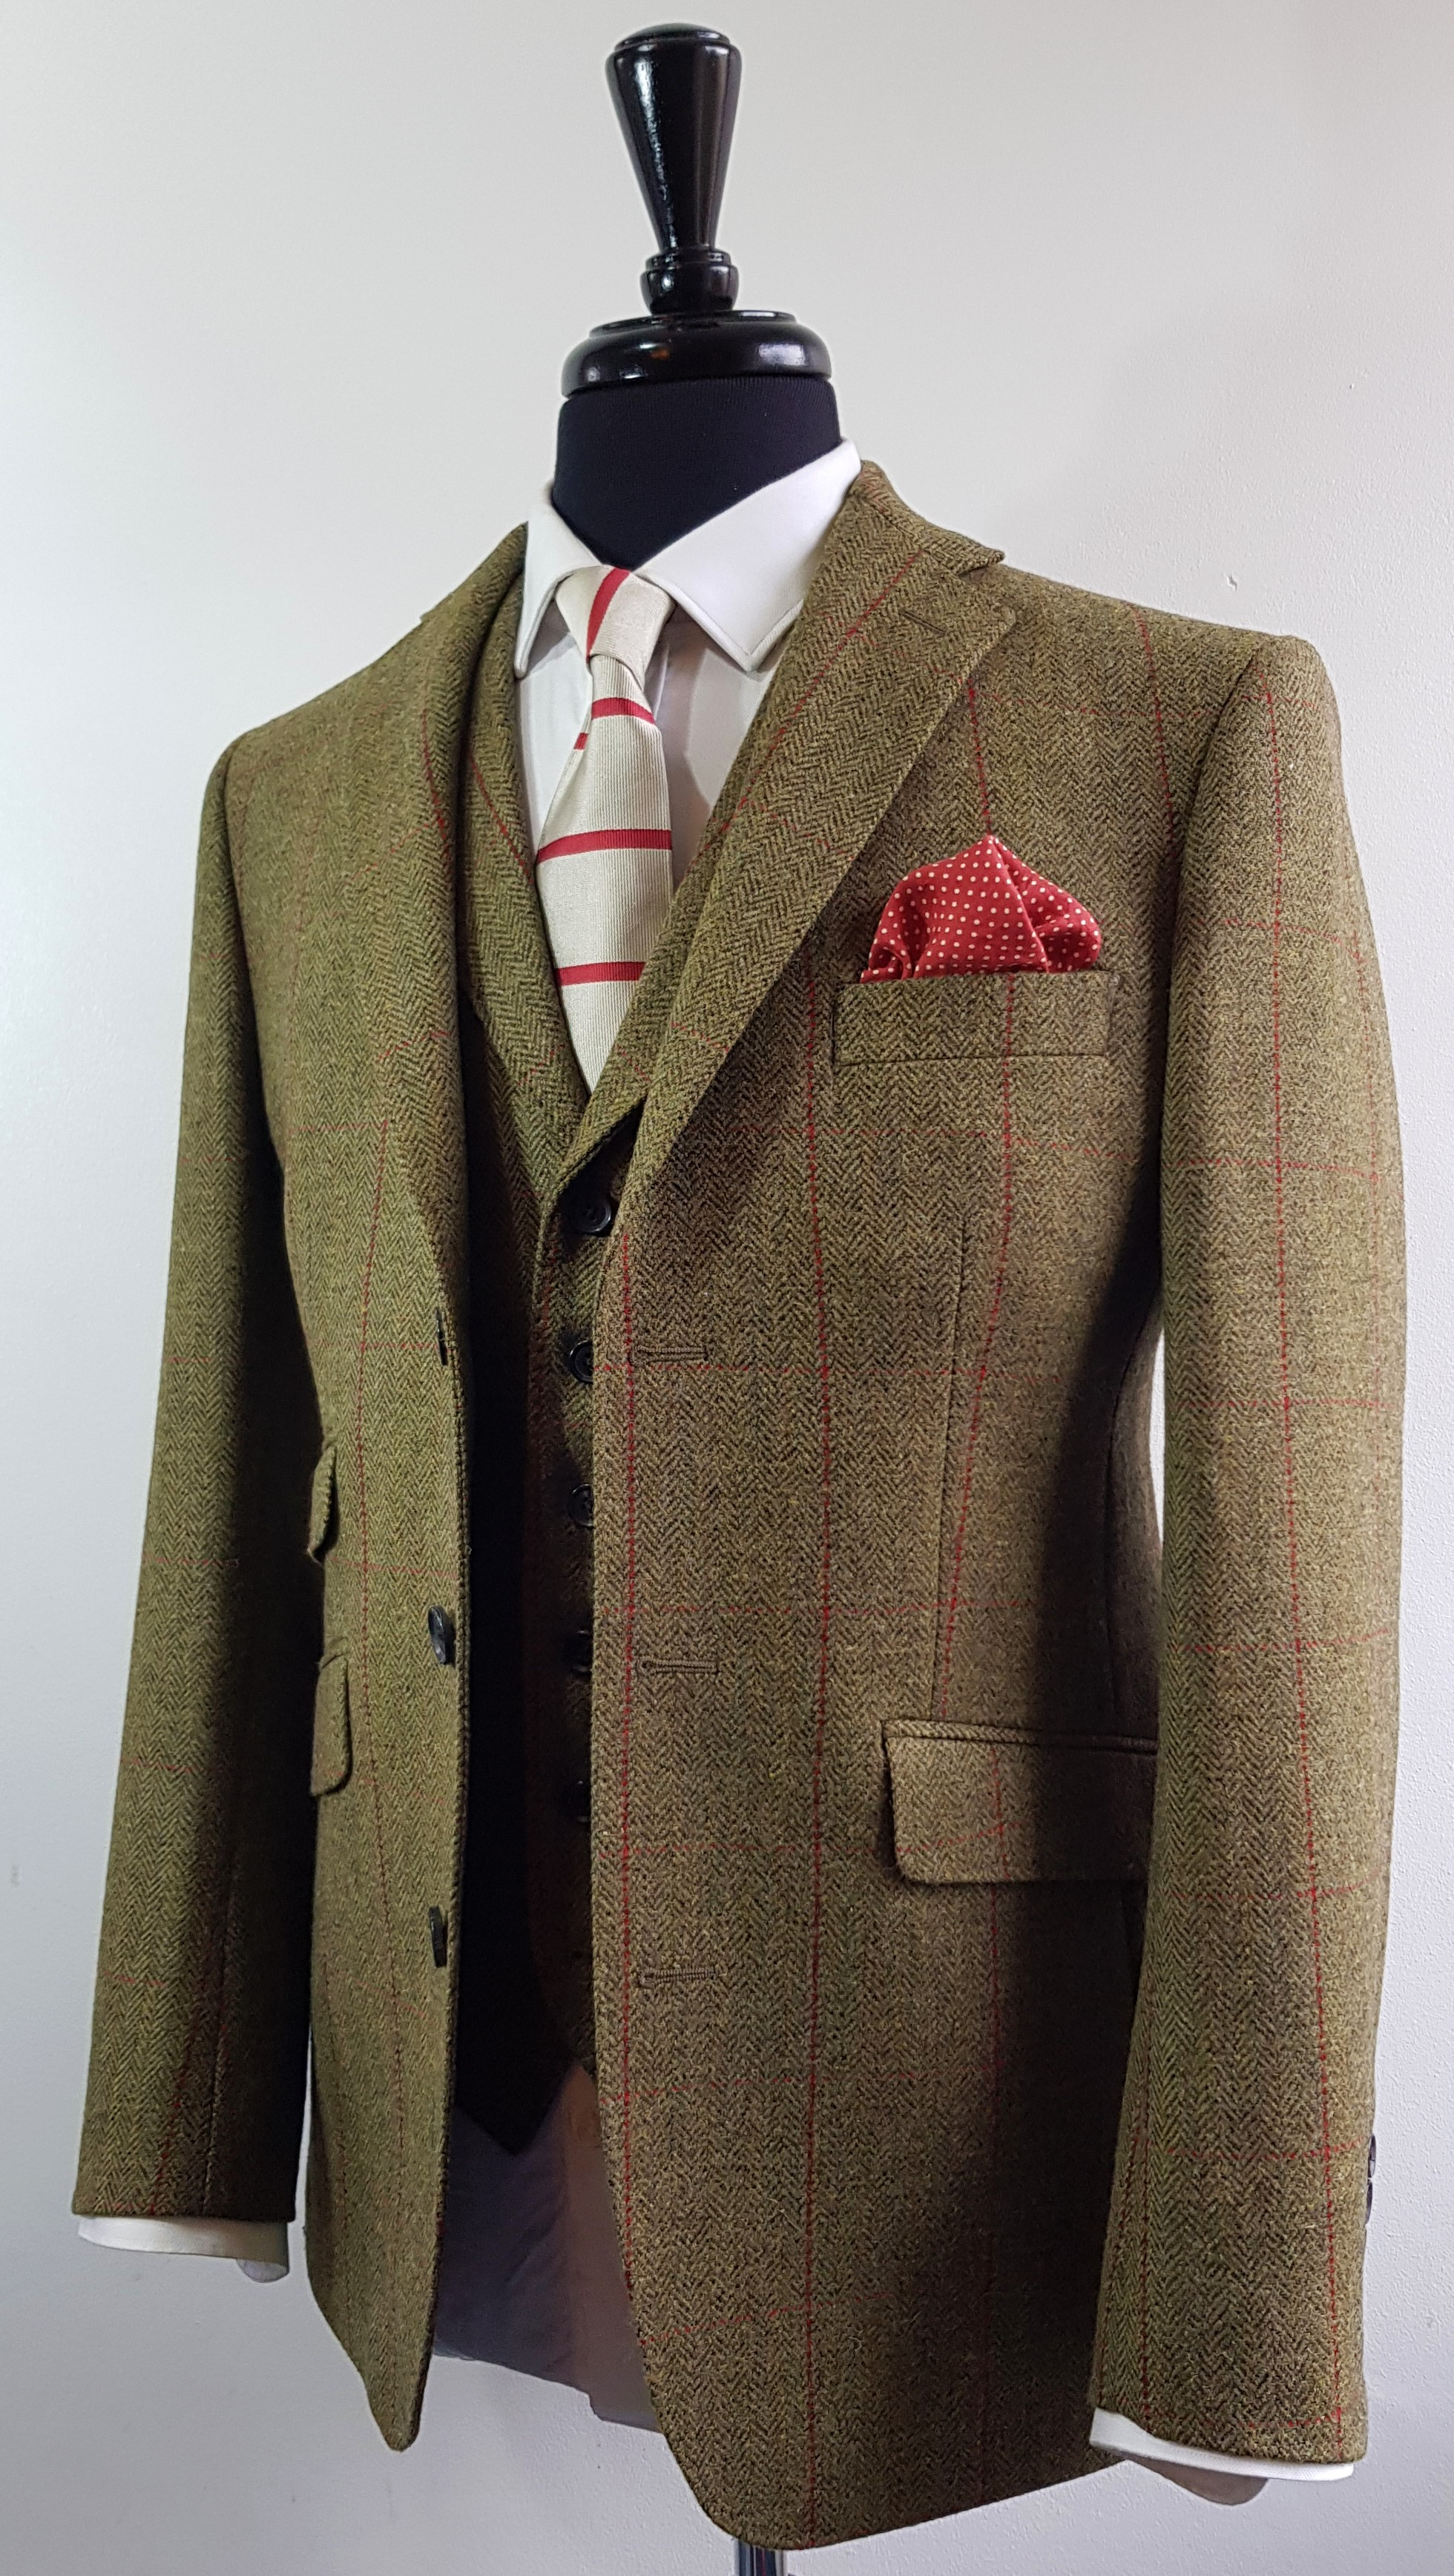 Tweed Jacket and Tweed Waistcoat (6).jpg